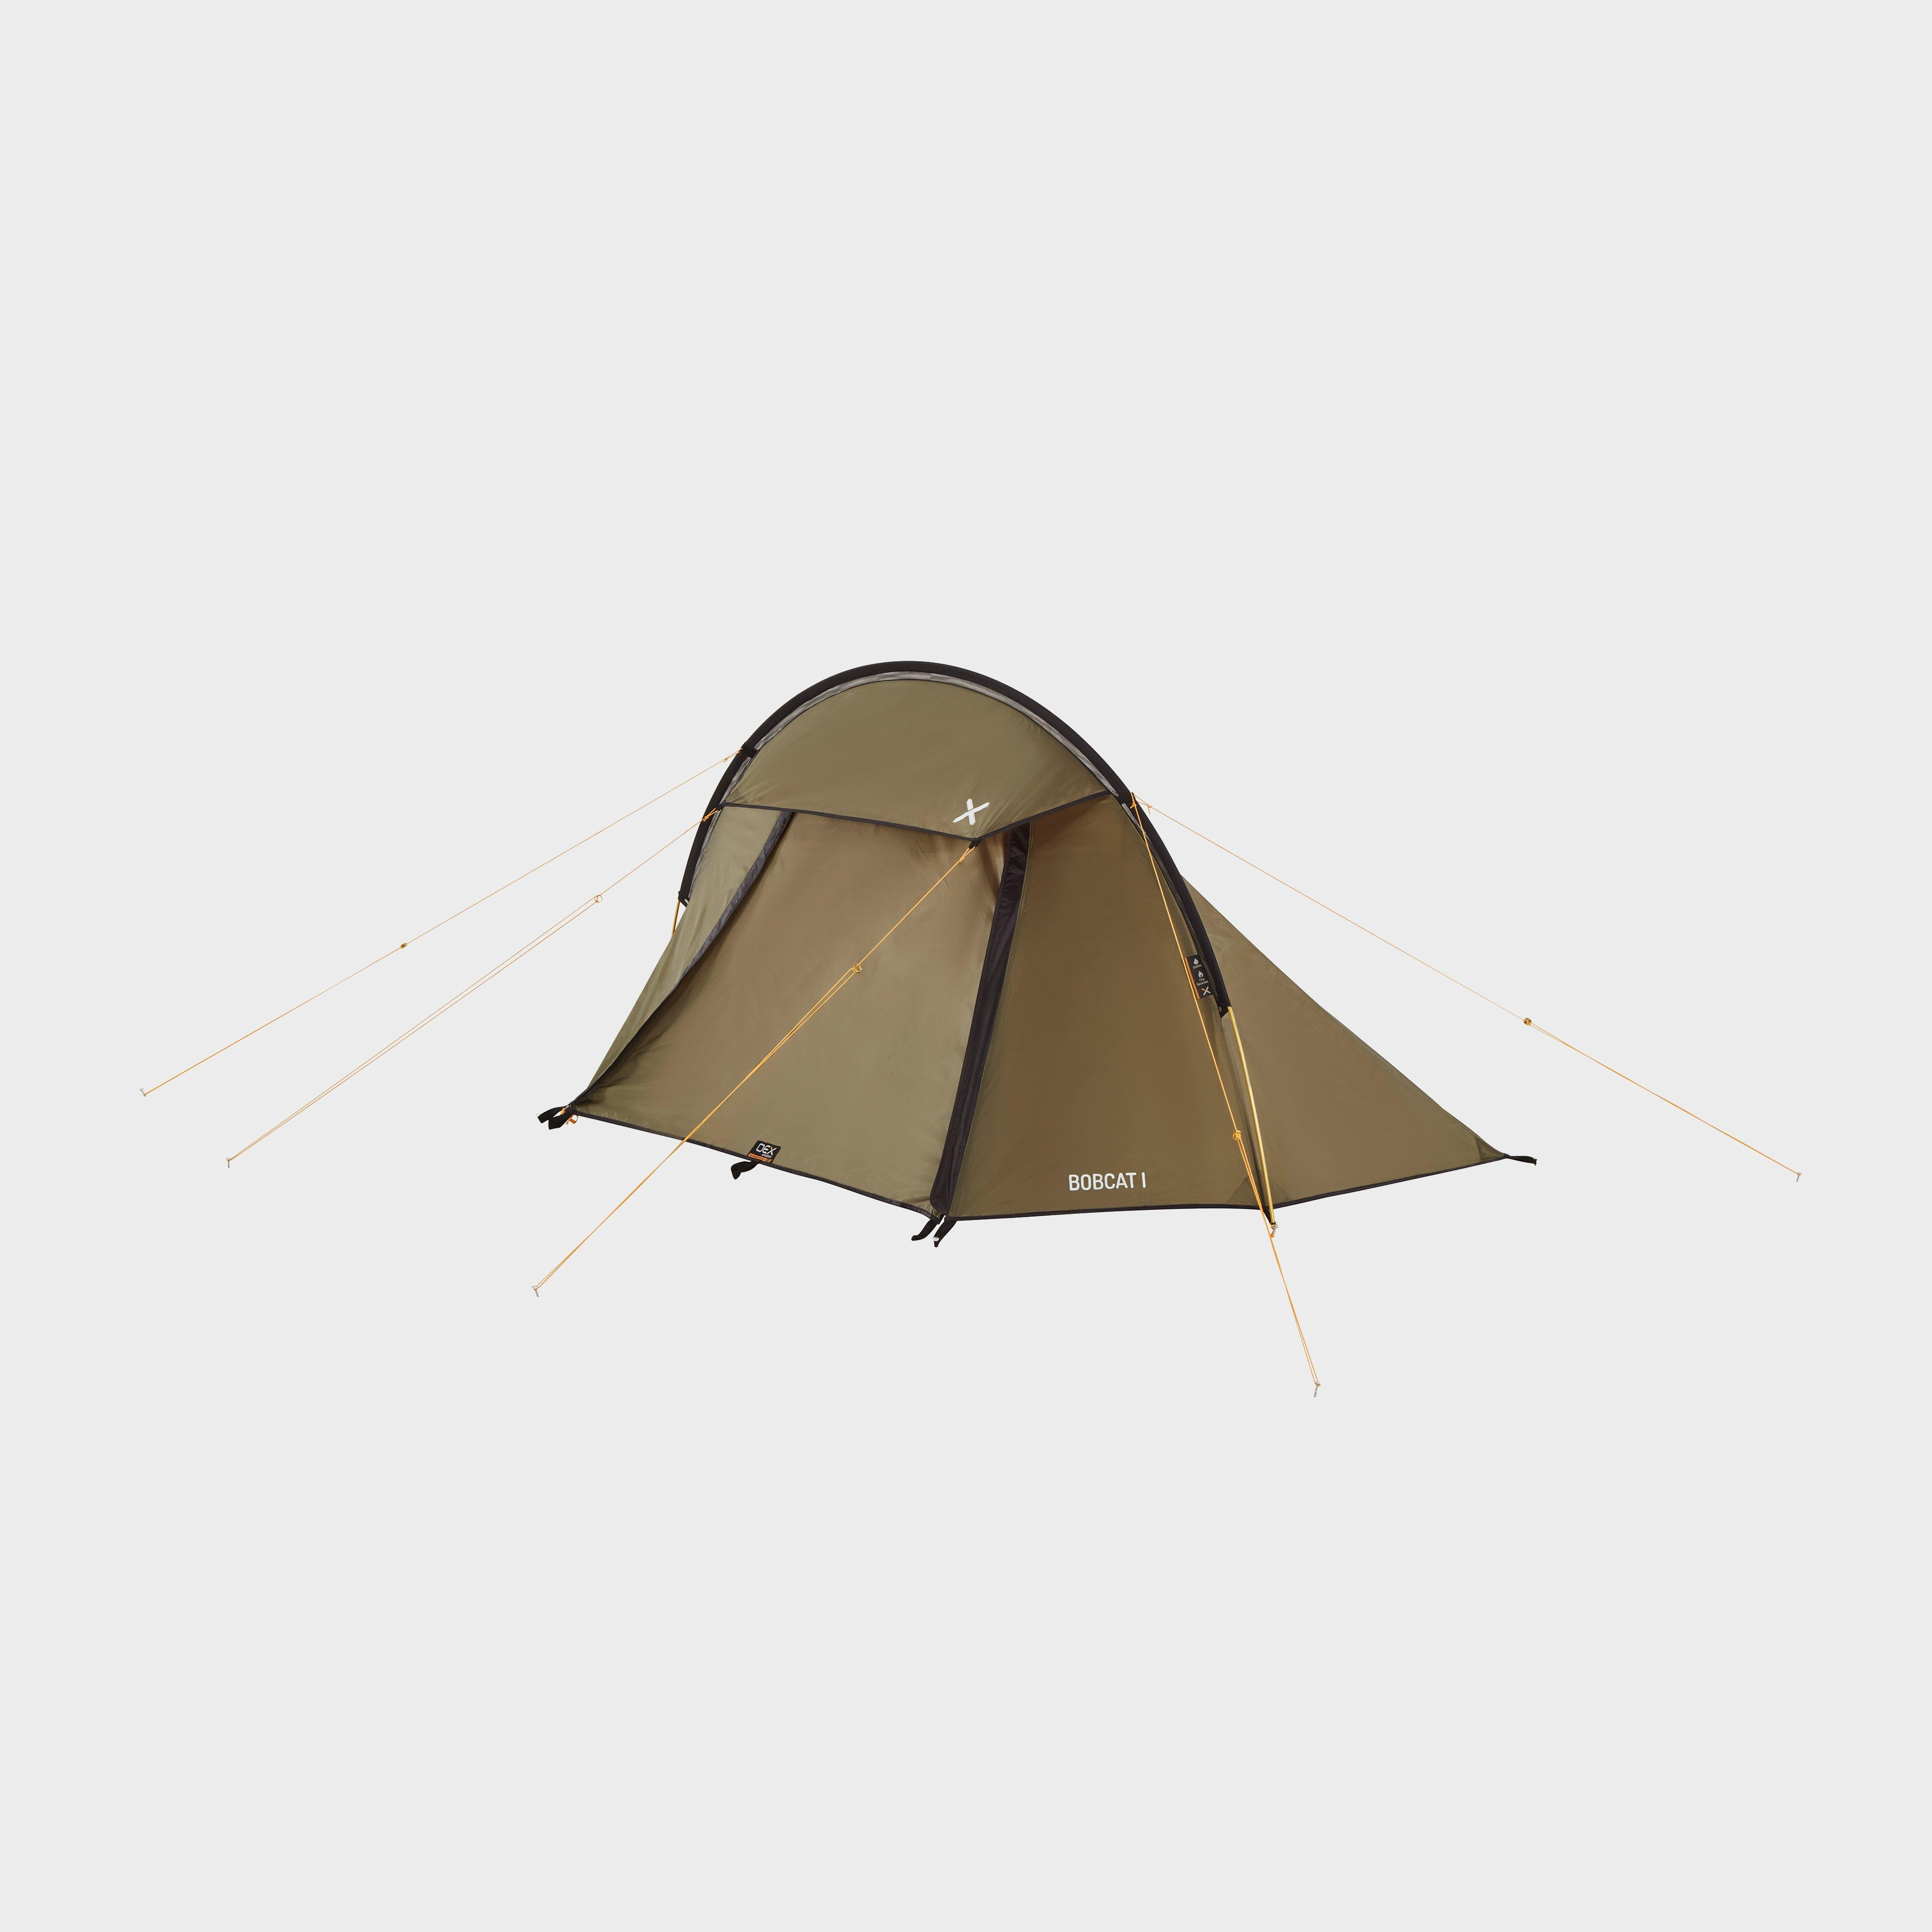 Oex Oex Bobcat 1-Person Tent - Green, Green